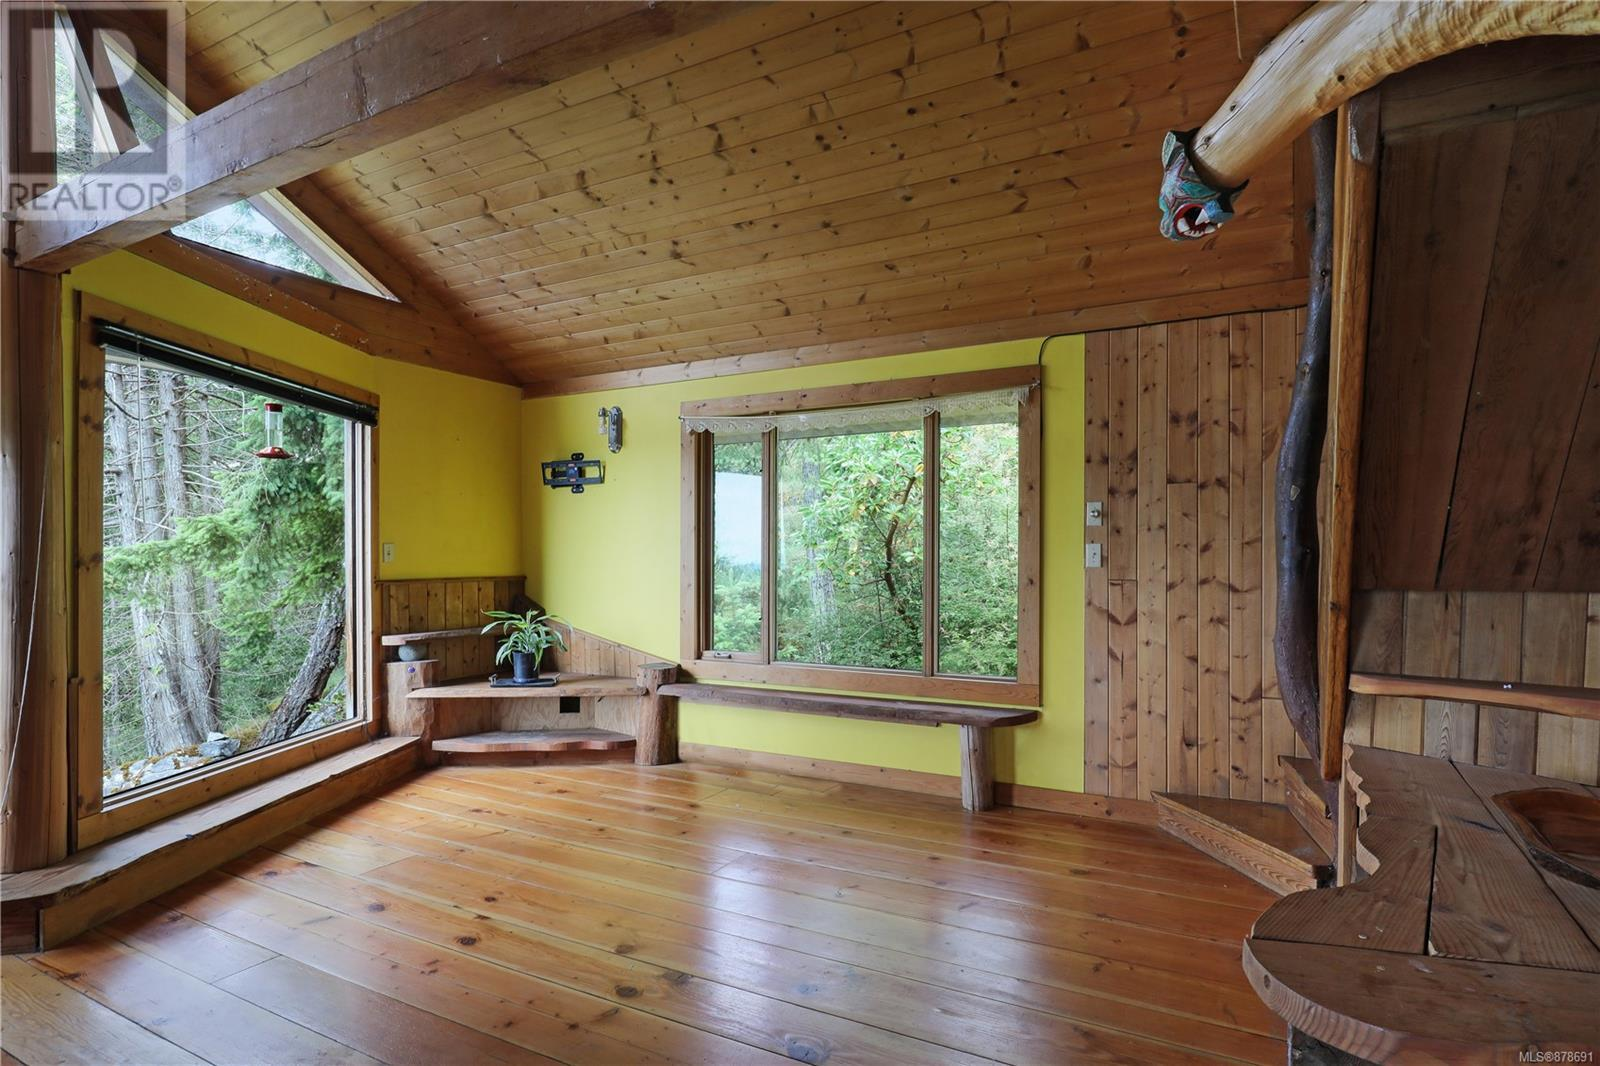 MLS® #878691 - Cortes Island House For sale Image #40